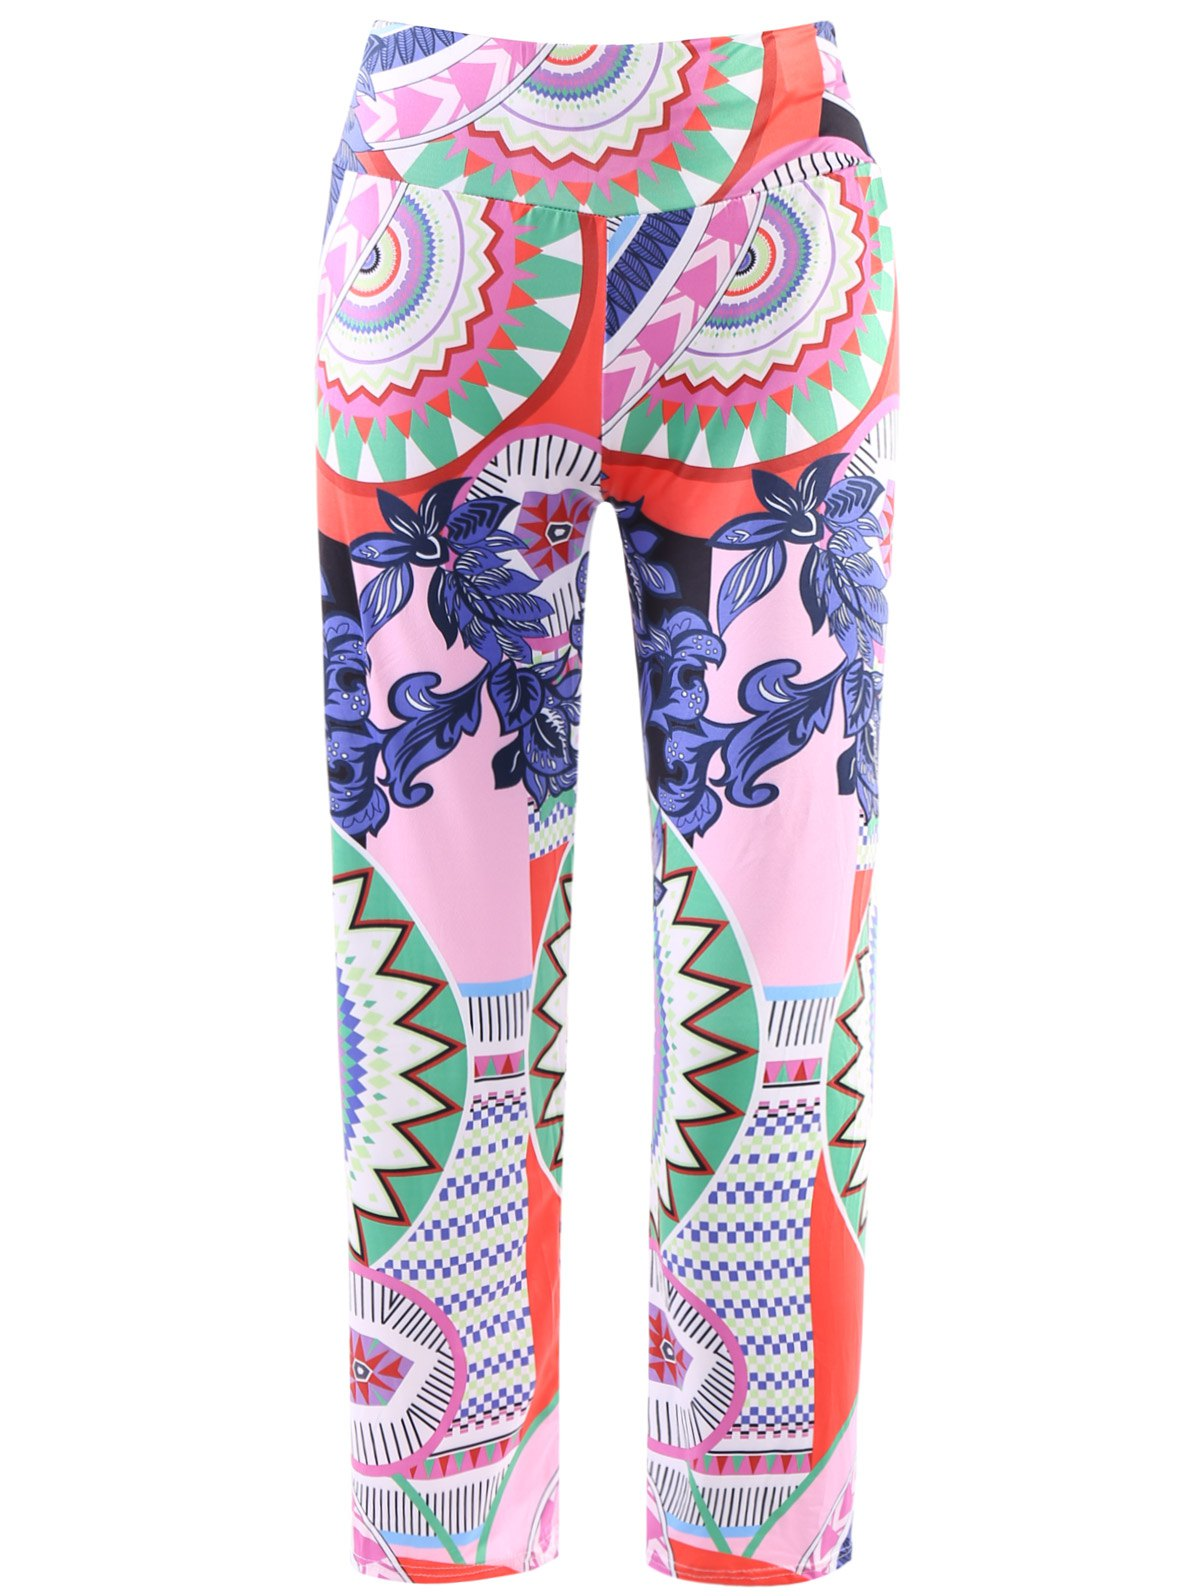 Fashionable Elastic Waist Loose-Fitting Printed Women's Exumas Pants - COLORMIX L